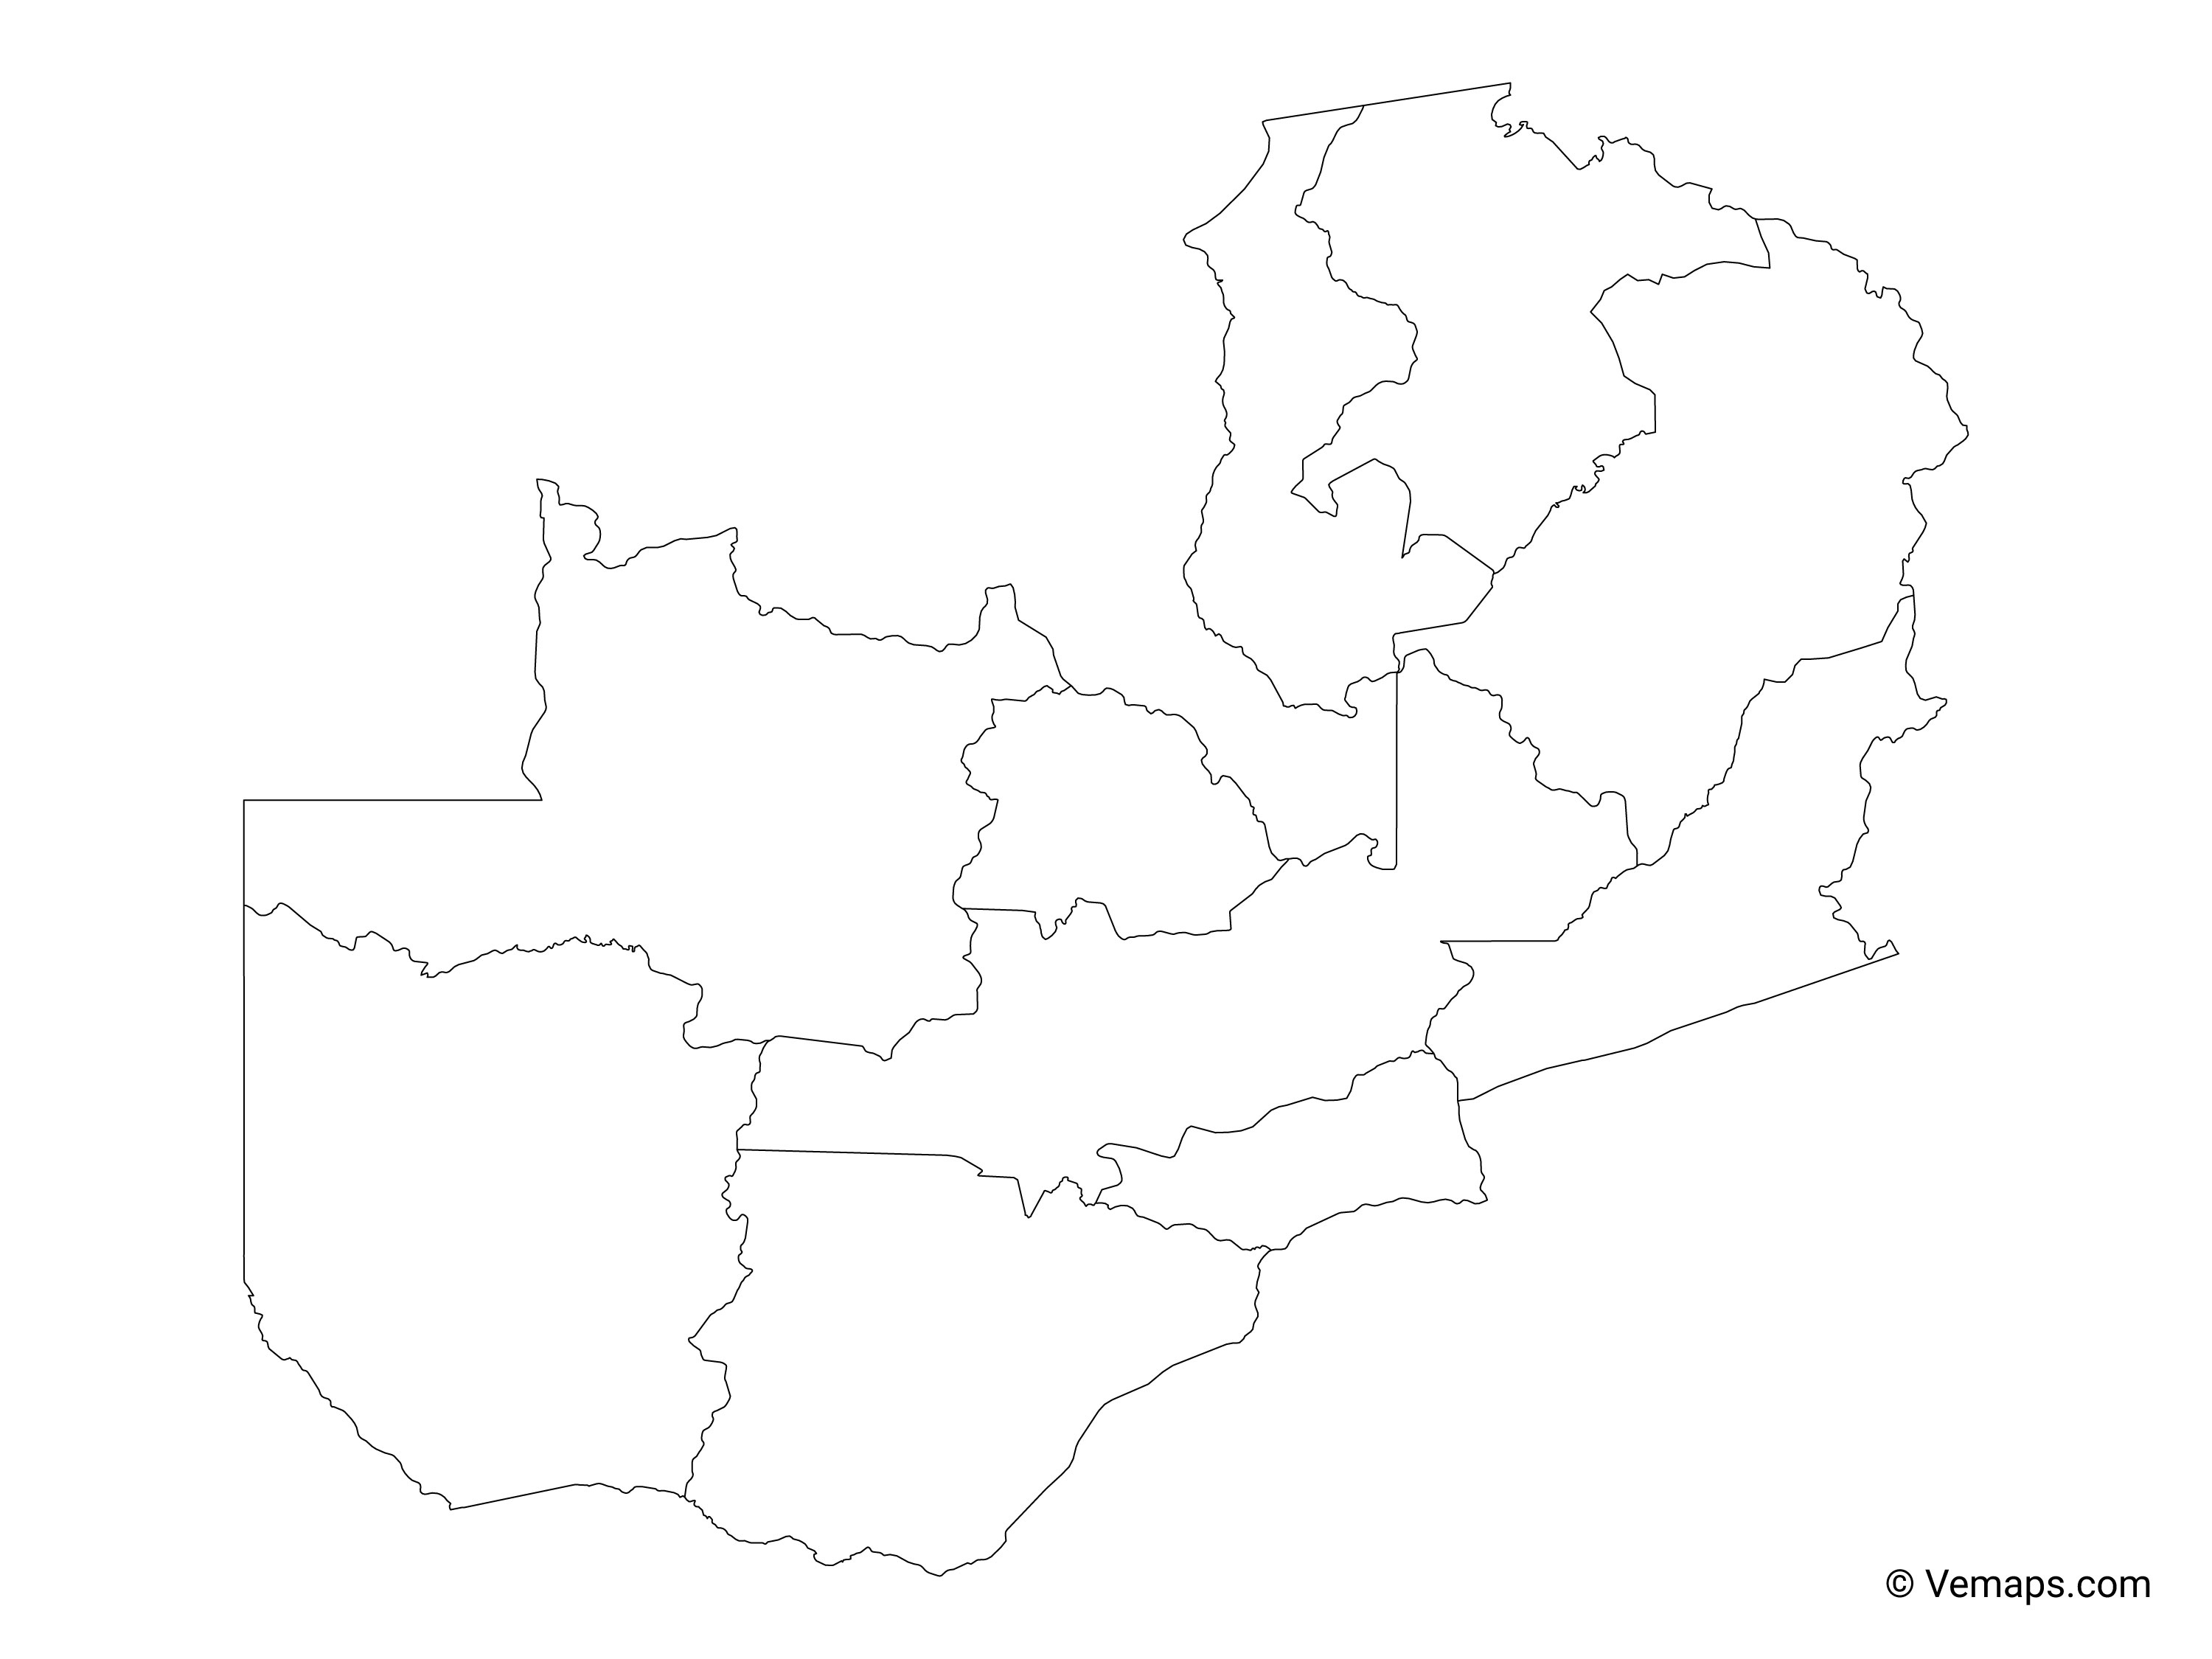 Outline Map of Zambia with Provinces   Free Vector Maps